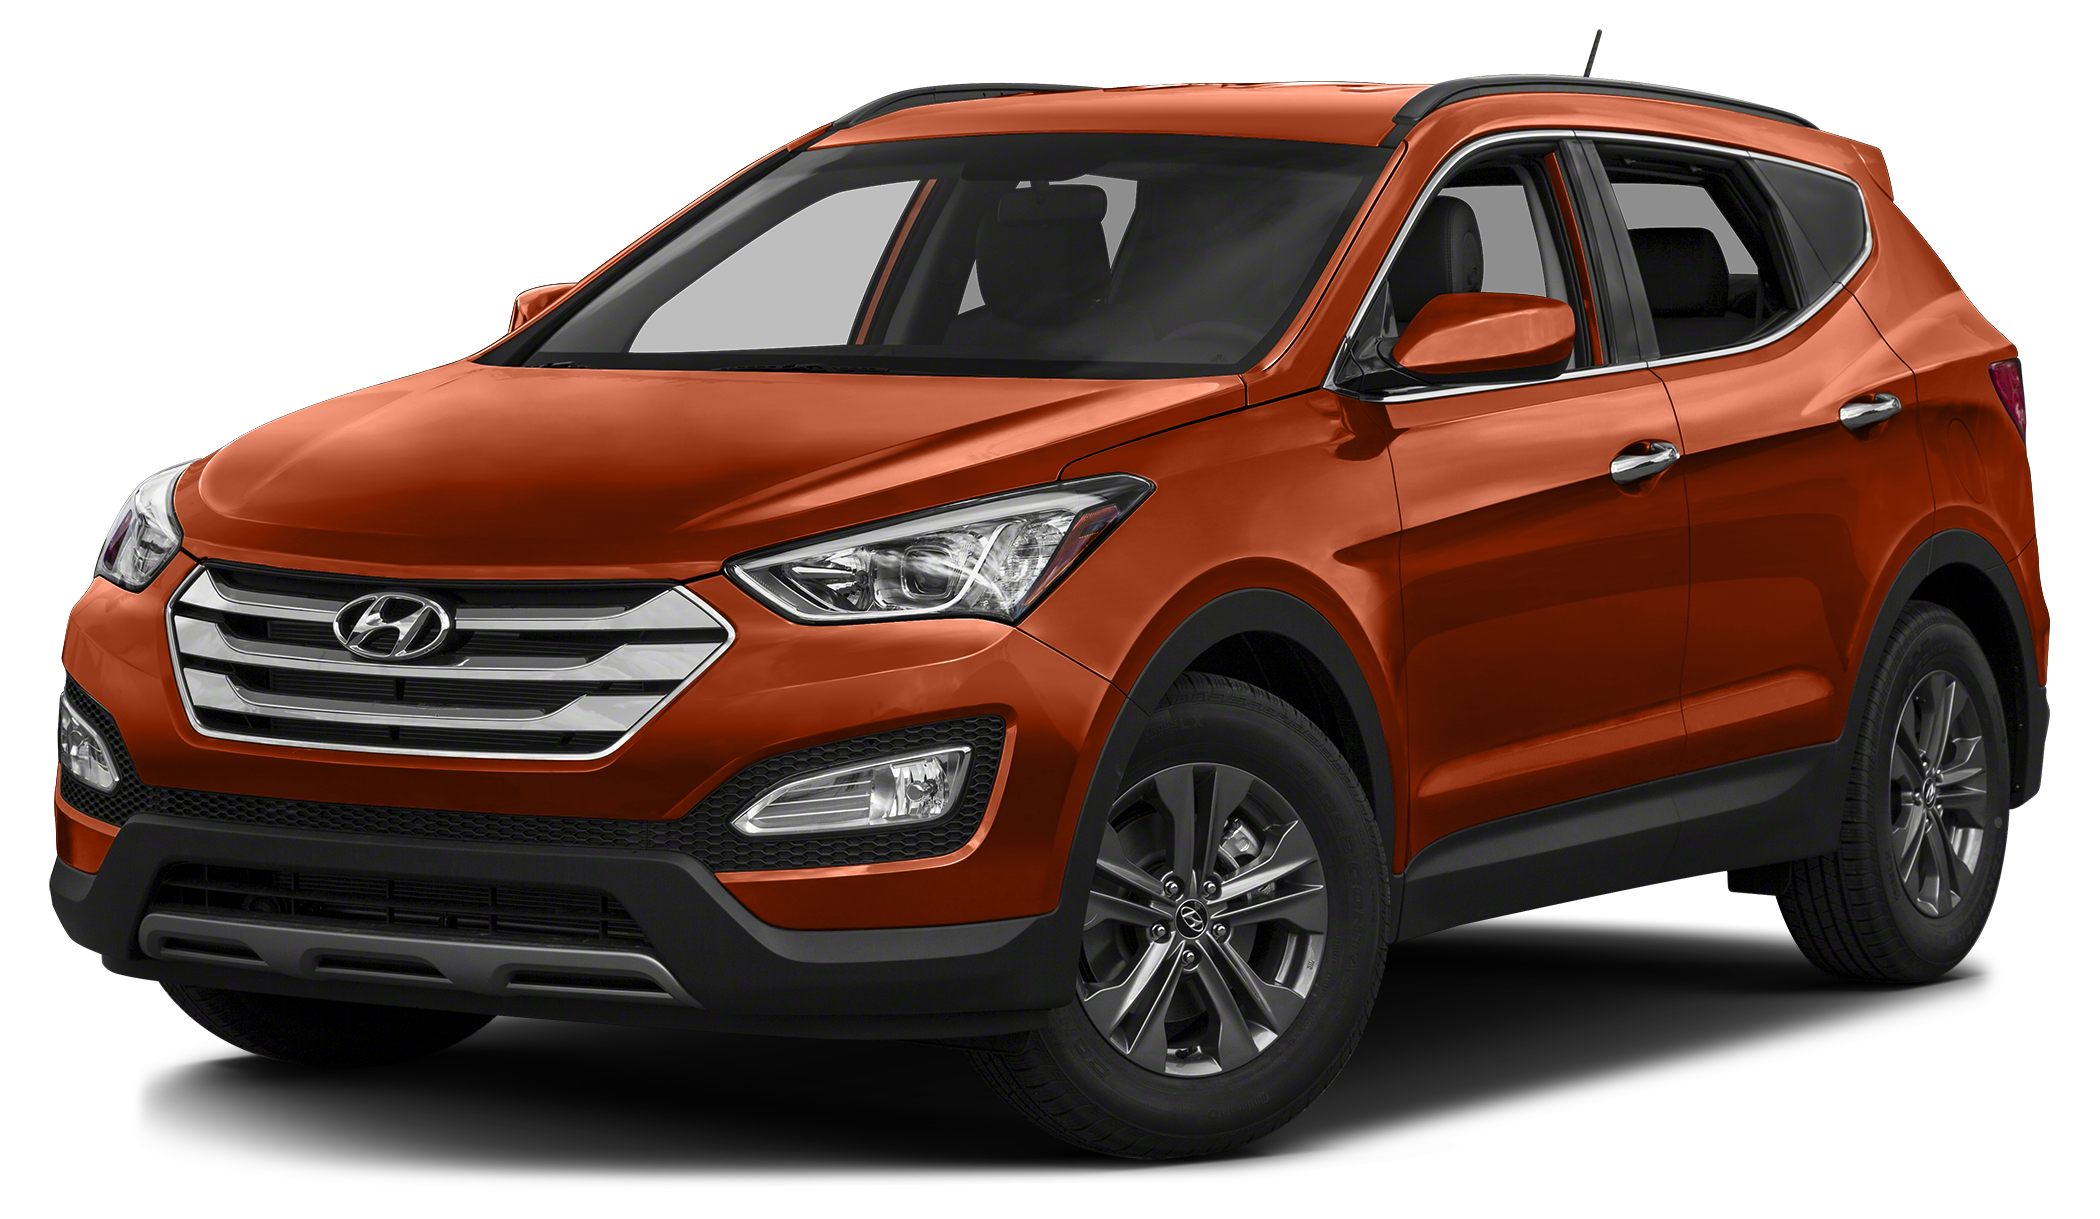 2013 Hyundai Santa Fe Sport 24 CarFax 1-Owner -Bluetooth ABS Brakes -Front Wheel Drive and many